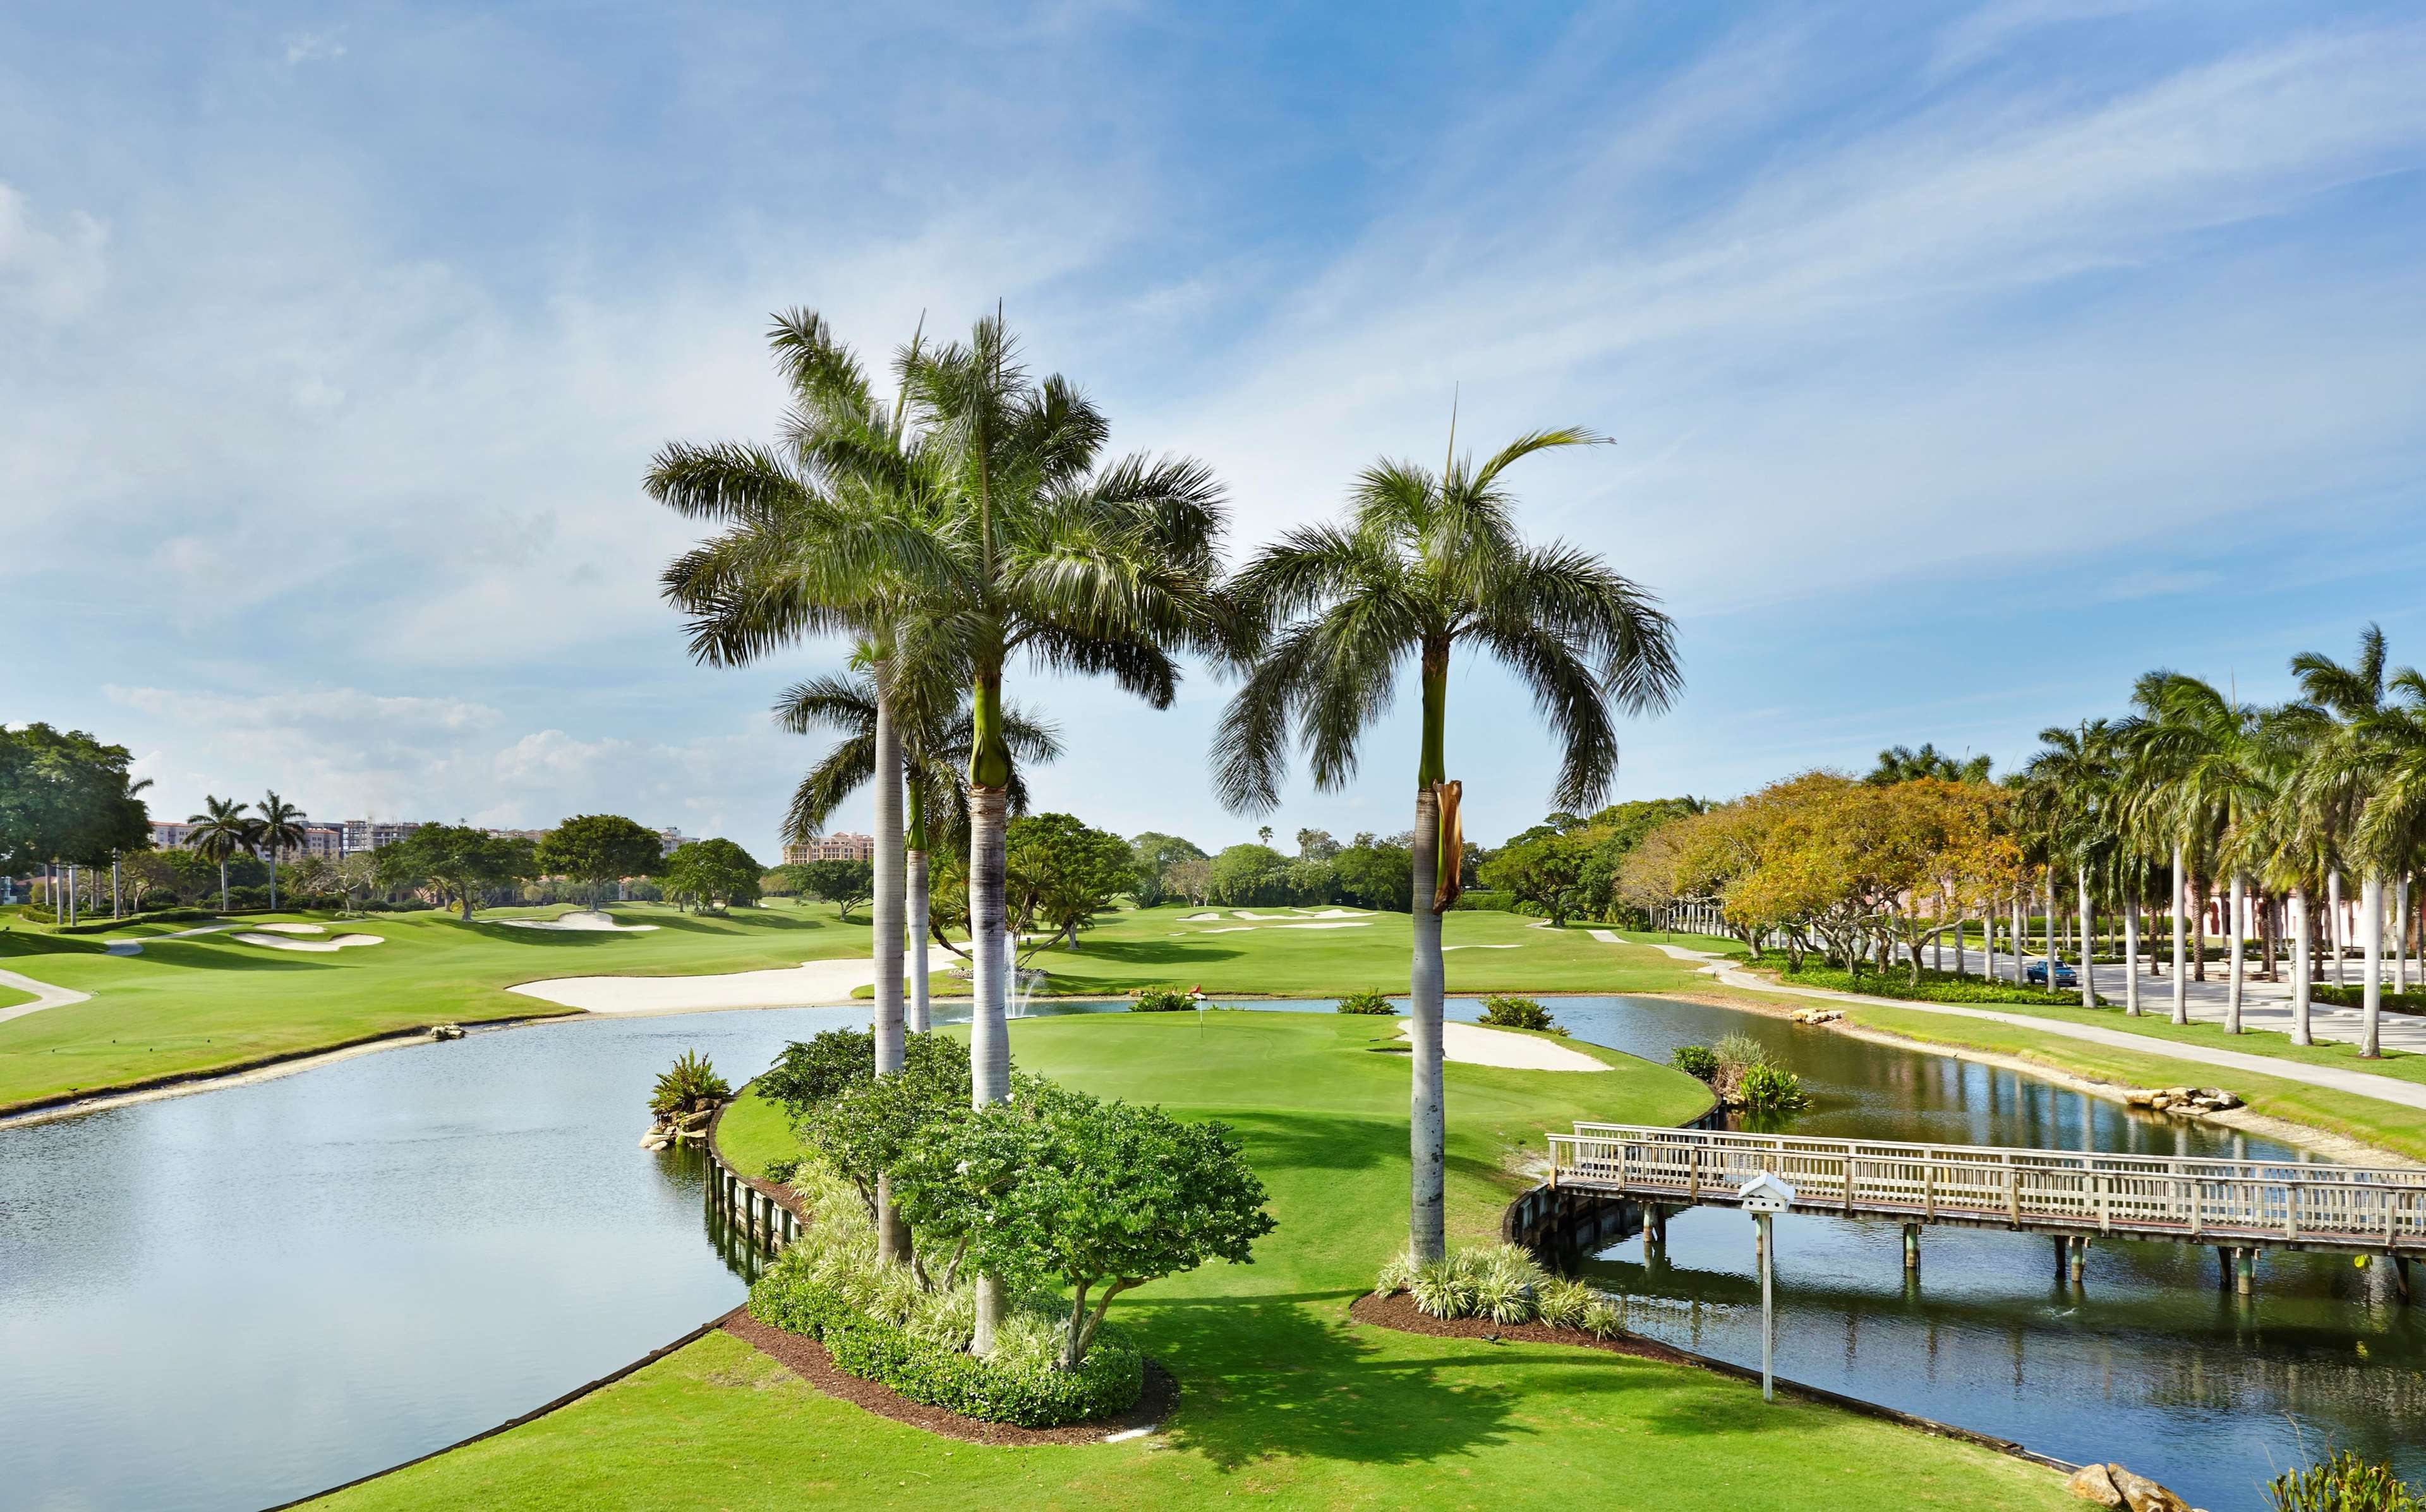 Hotels and motels in Parkland, FL - Parkland, Florida Hotels and ...